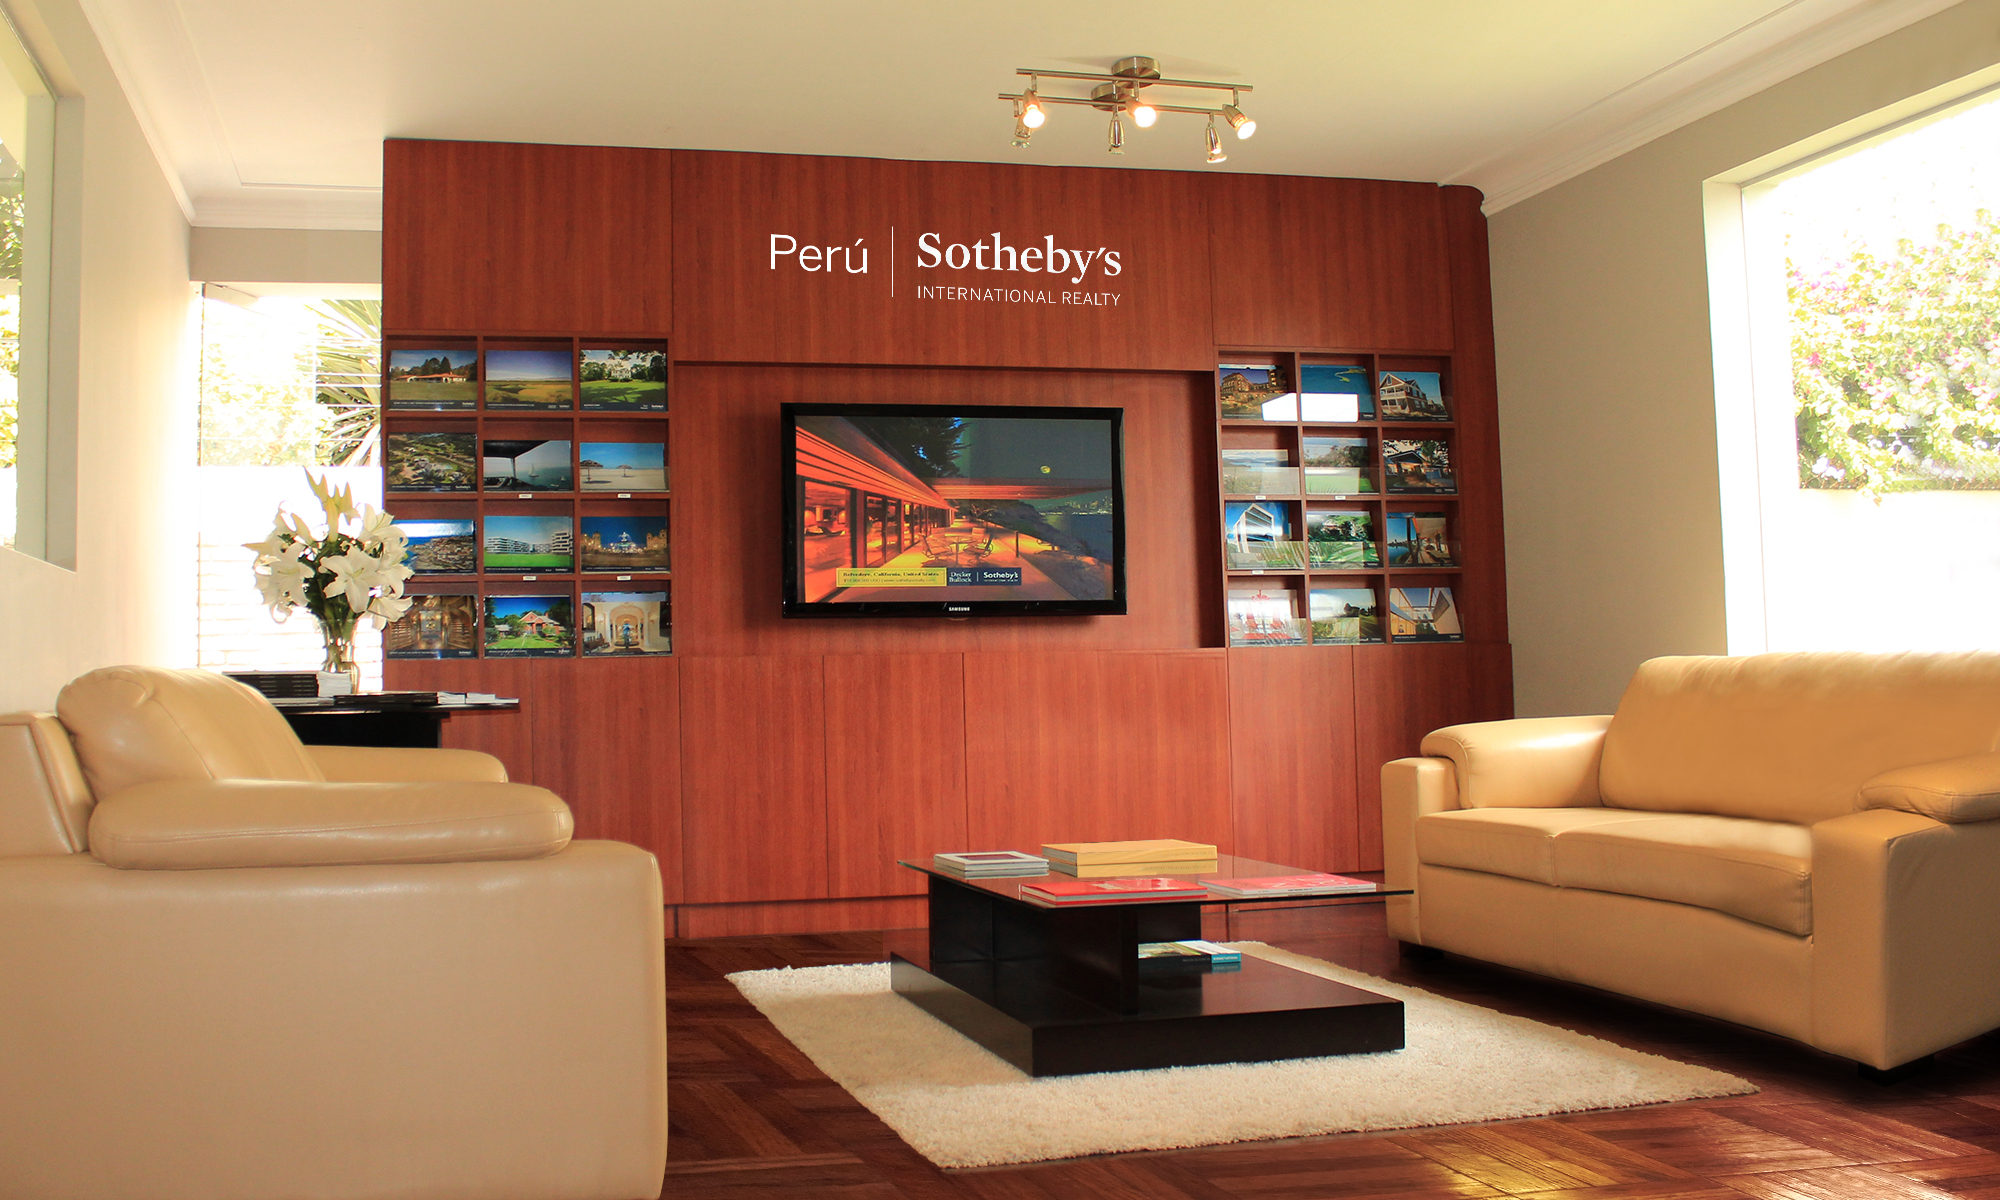 Office Perú Sotheby's International Realty Photo